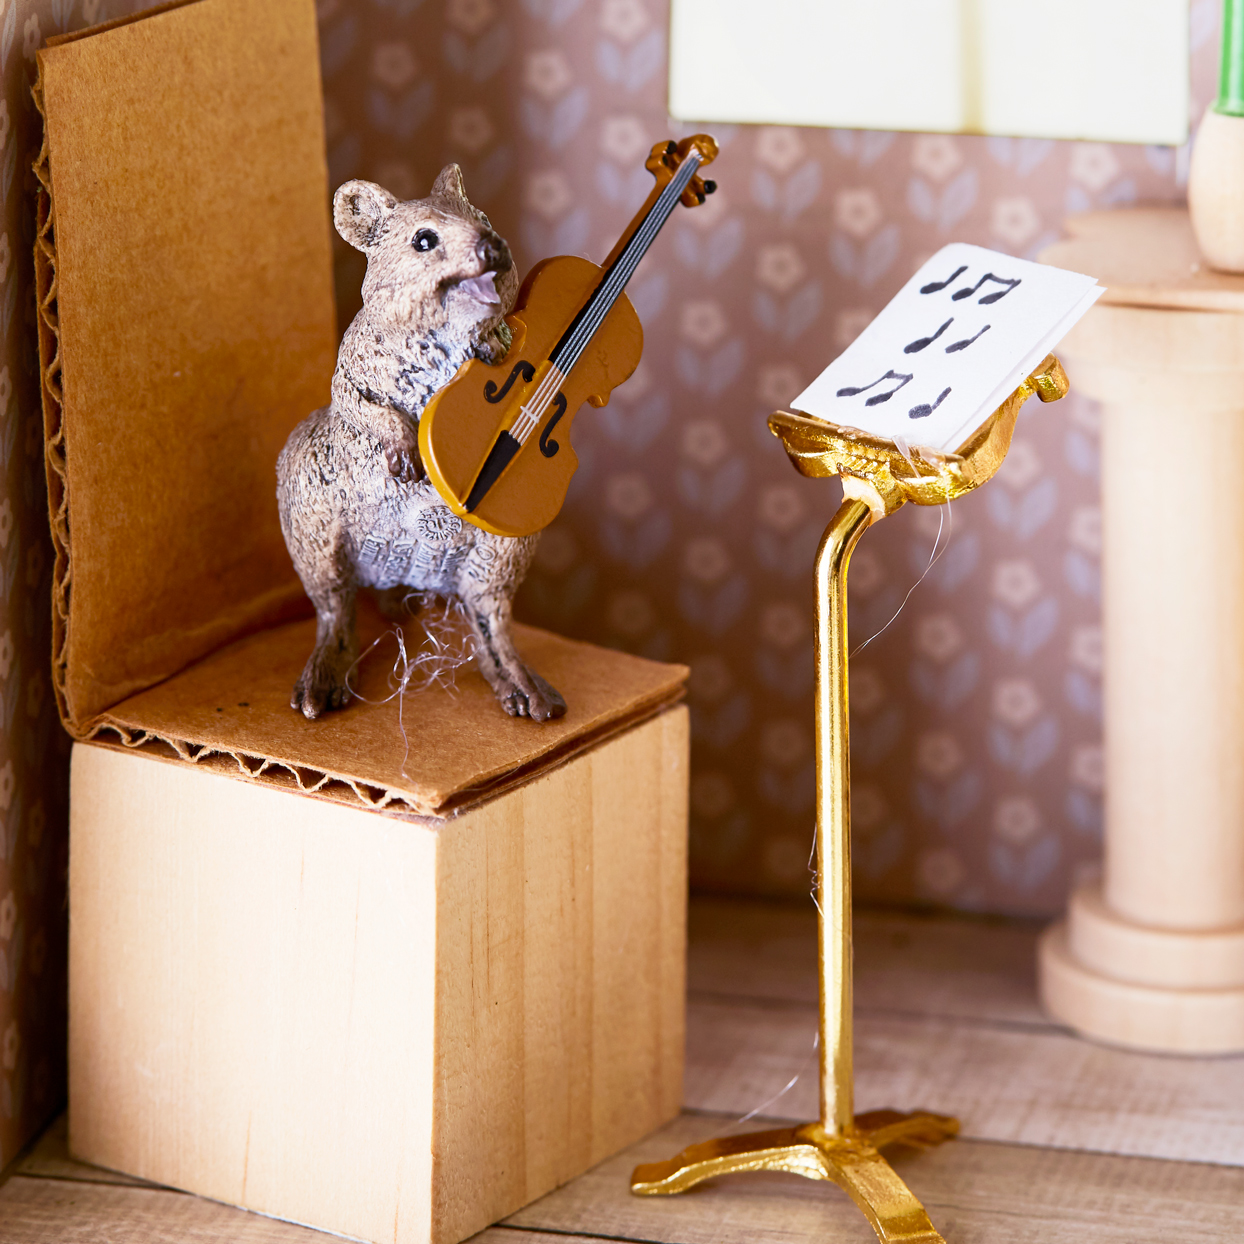 mouse playing the violin